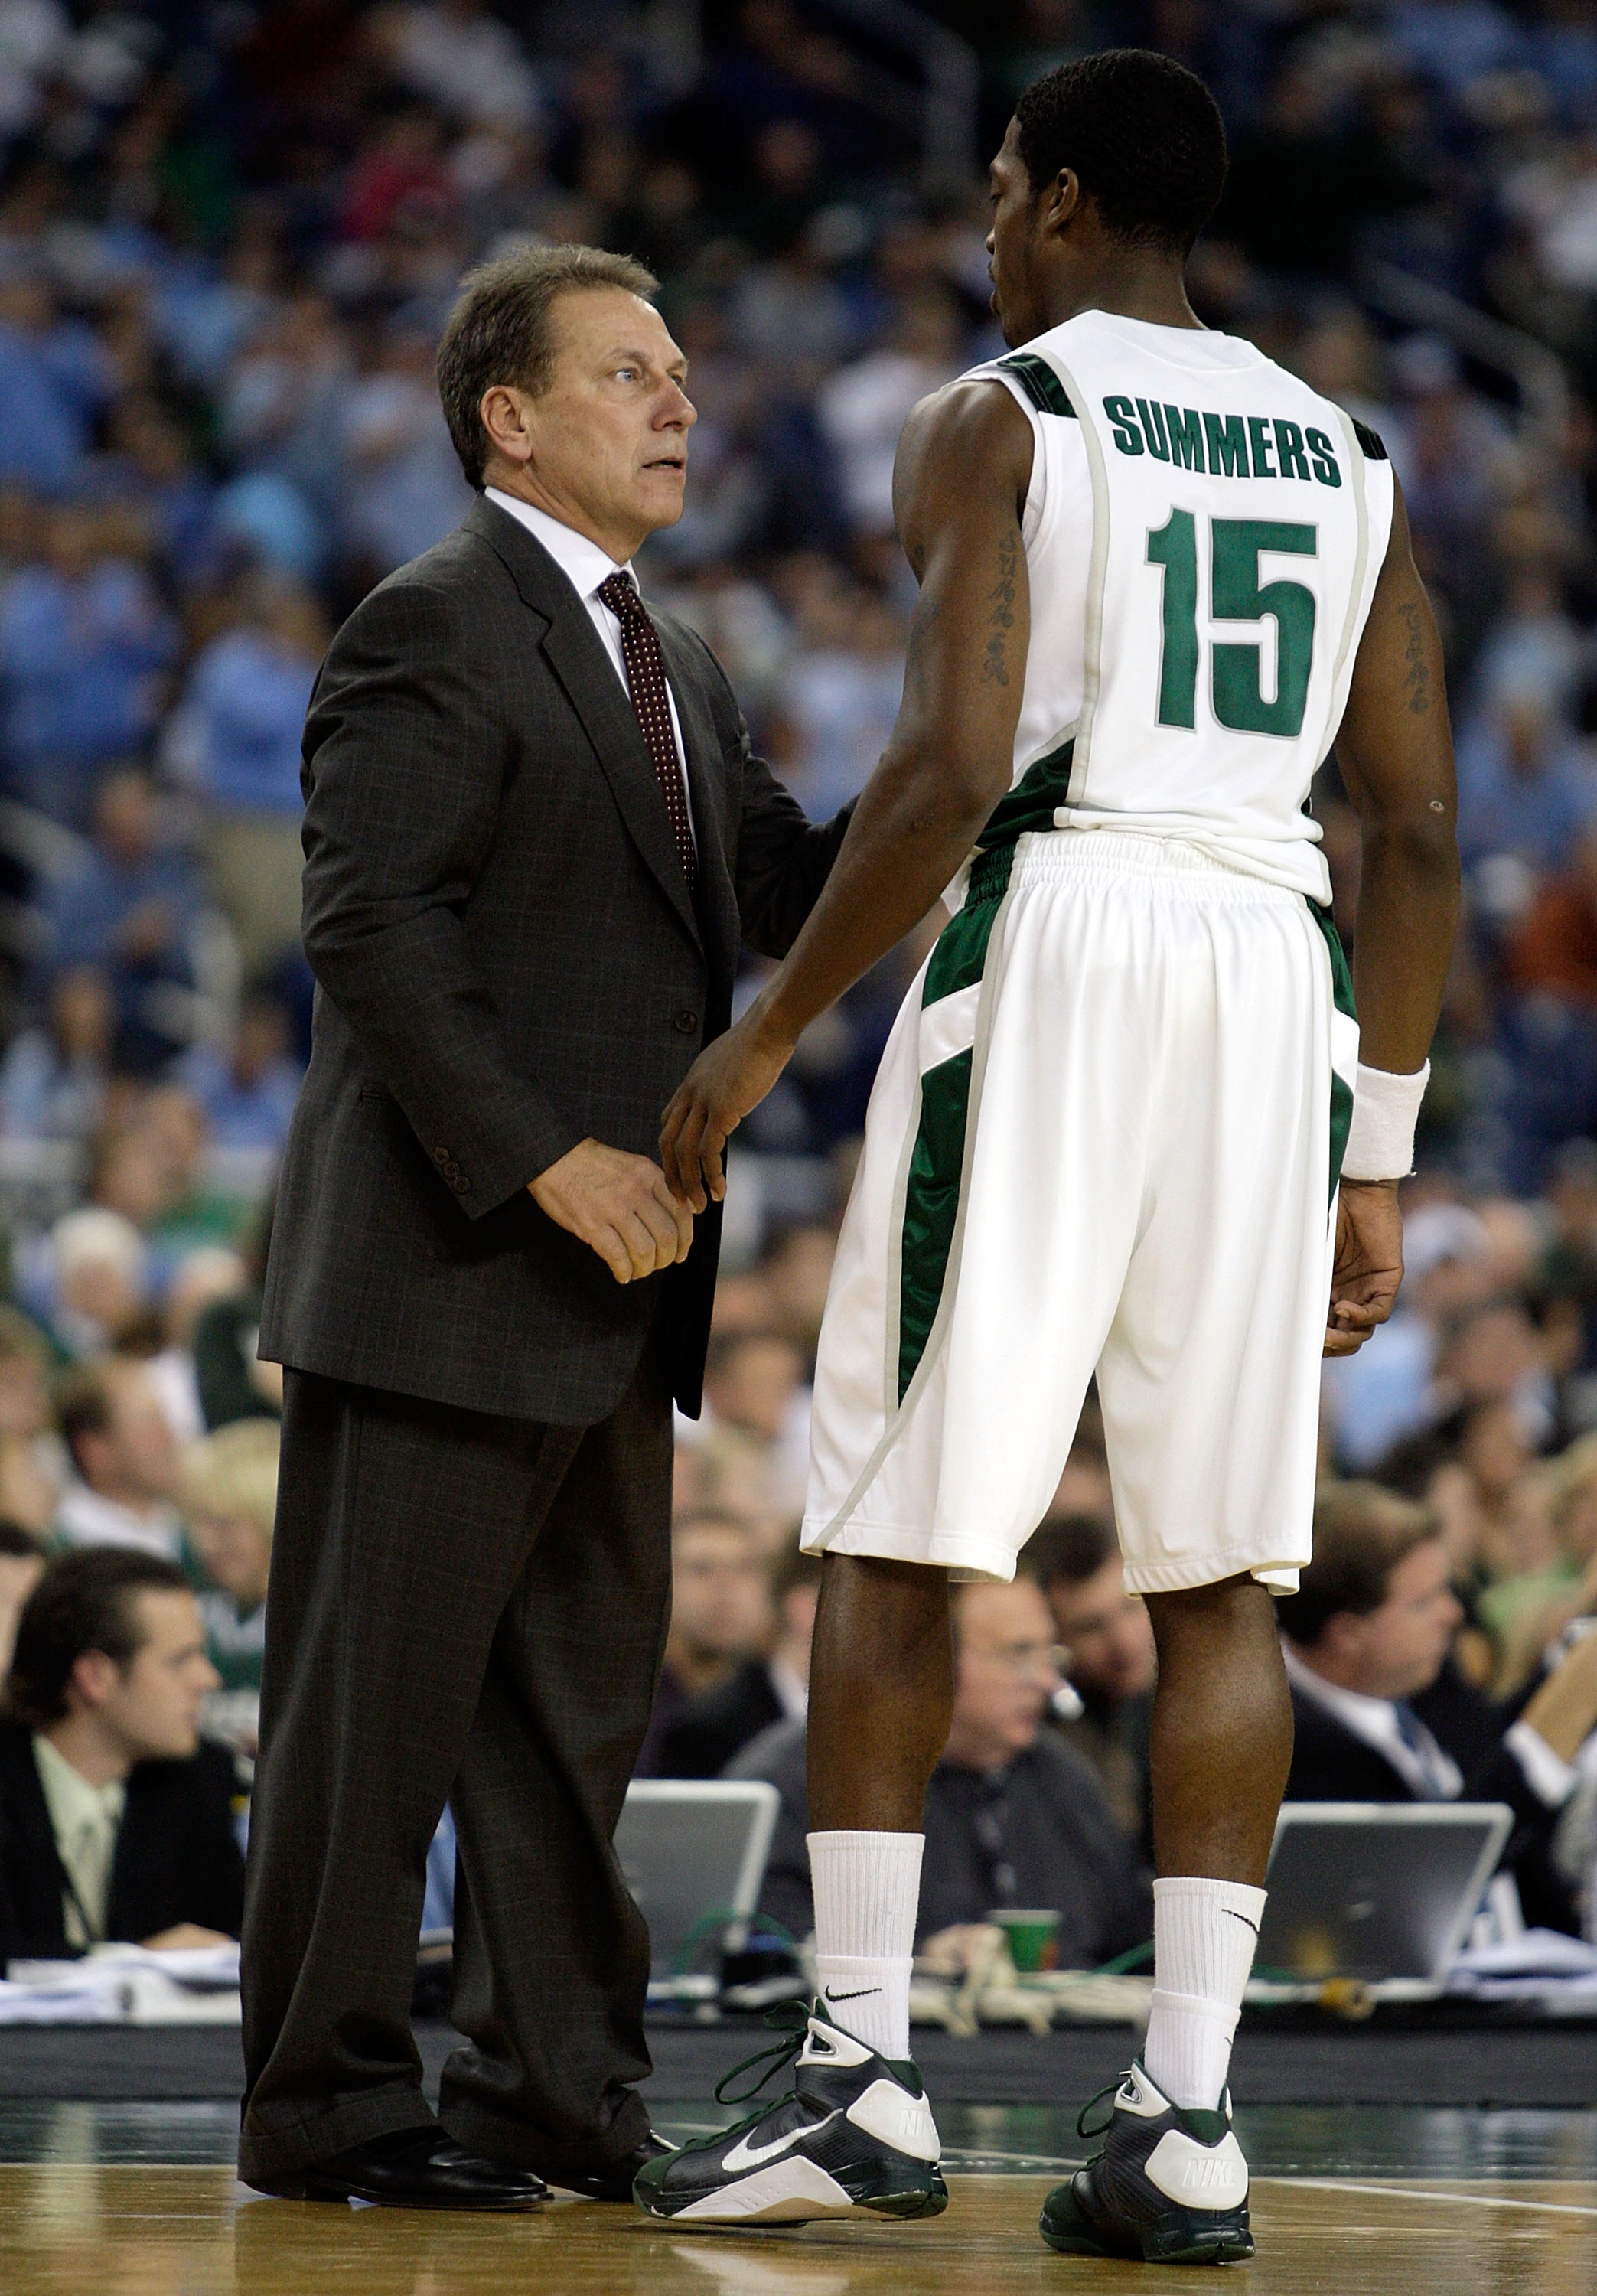 DETROIT - DECEMBER 03:  Tom Izzo the Head coach of the Michigan State Spartans talks with Durrell Summers #15 during the game against  the North Carolina Tar Heels  on December 3, 2008 at Ford Field in Detroit, Michigan.  (Photo by Andy Lyons/Getty Images